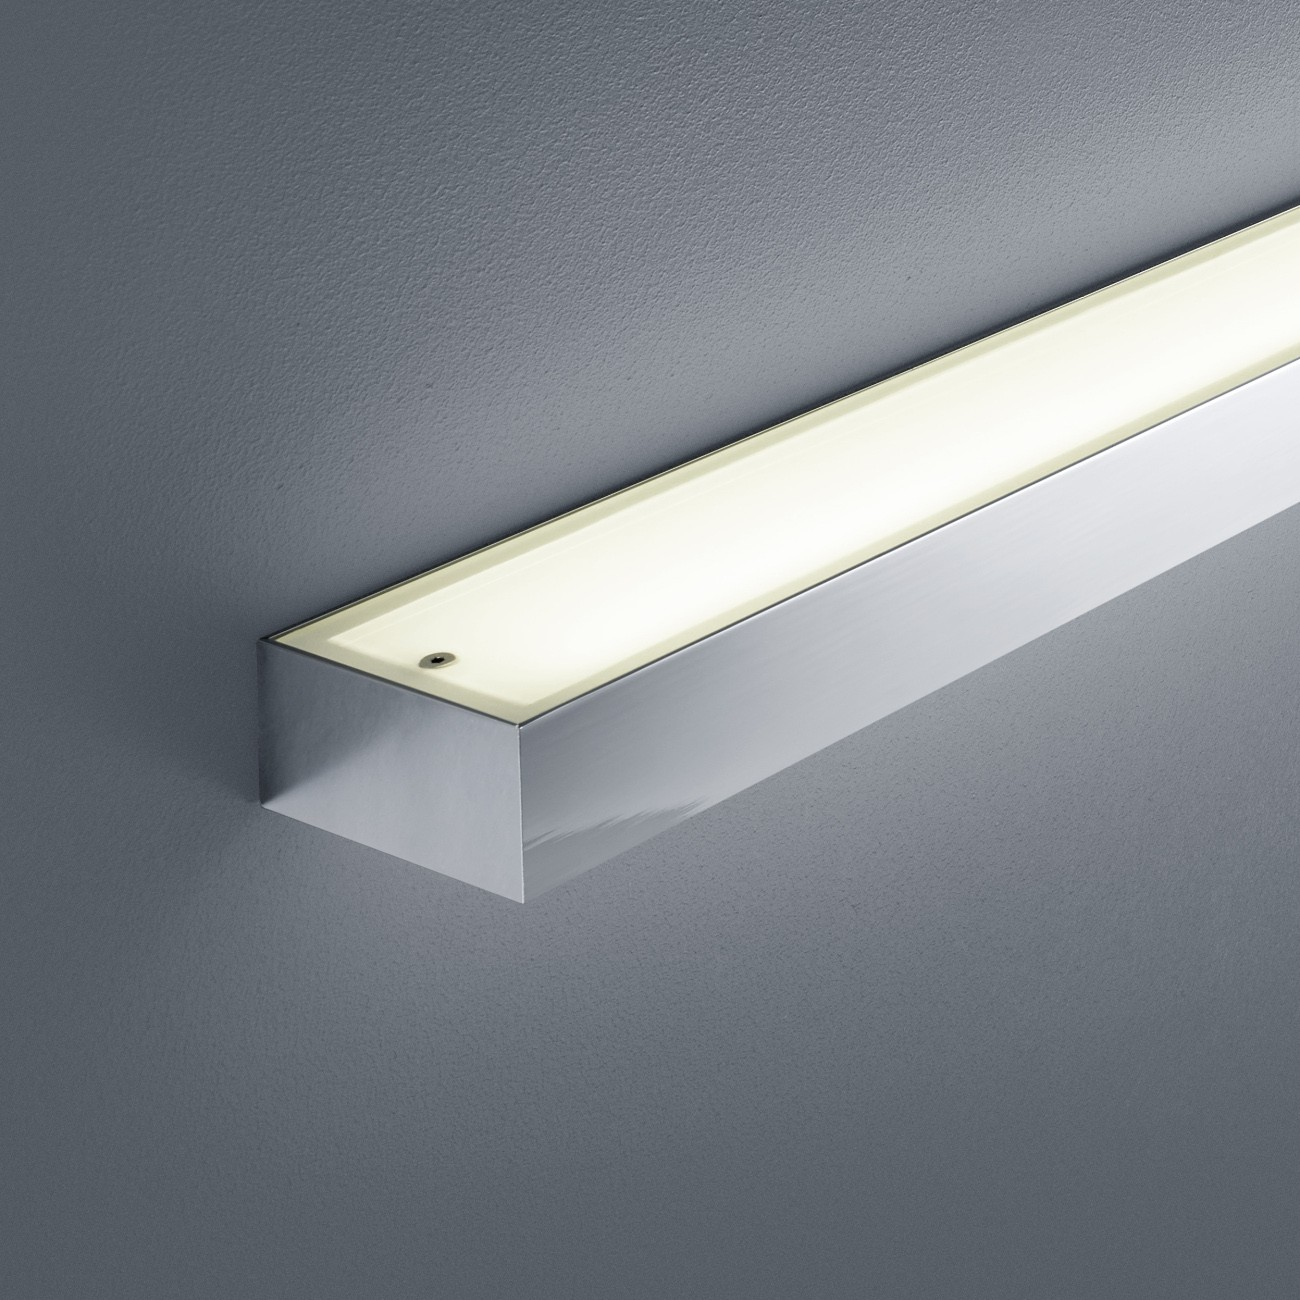 LED-Spiegelleuchte IP44 THEIA 300 Chrom